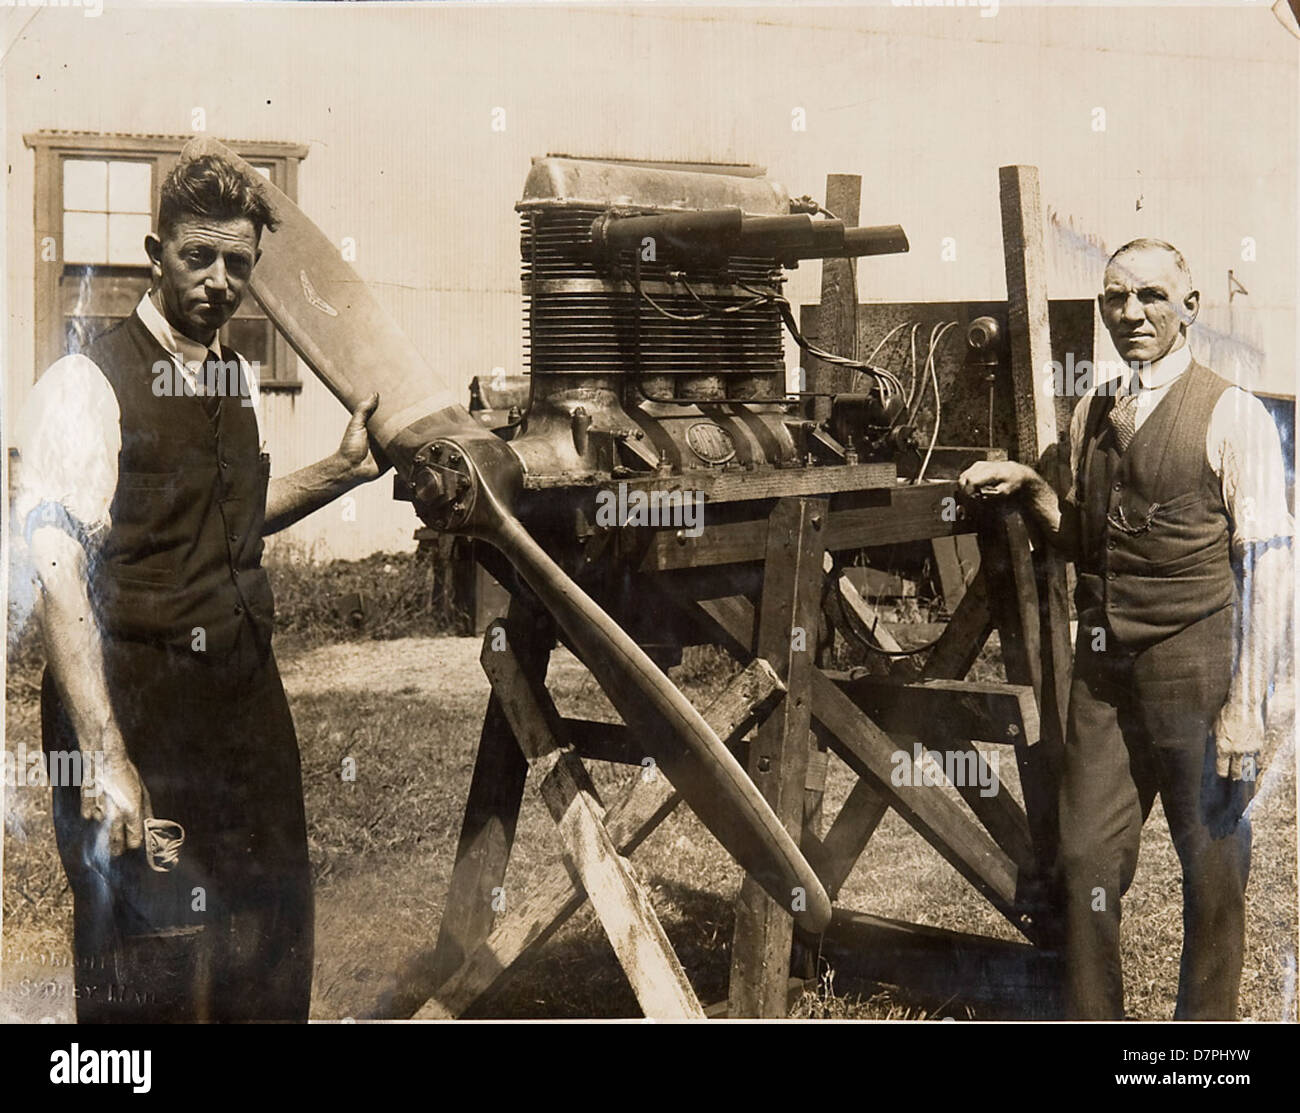 Don Harkness and unidentifed man with hydroglider engine, 1923 - 1933 - Stock Image